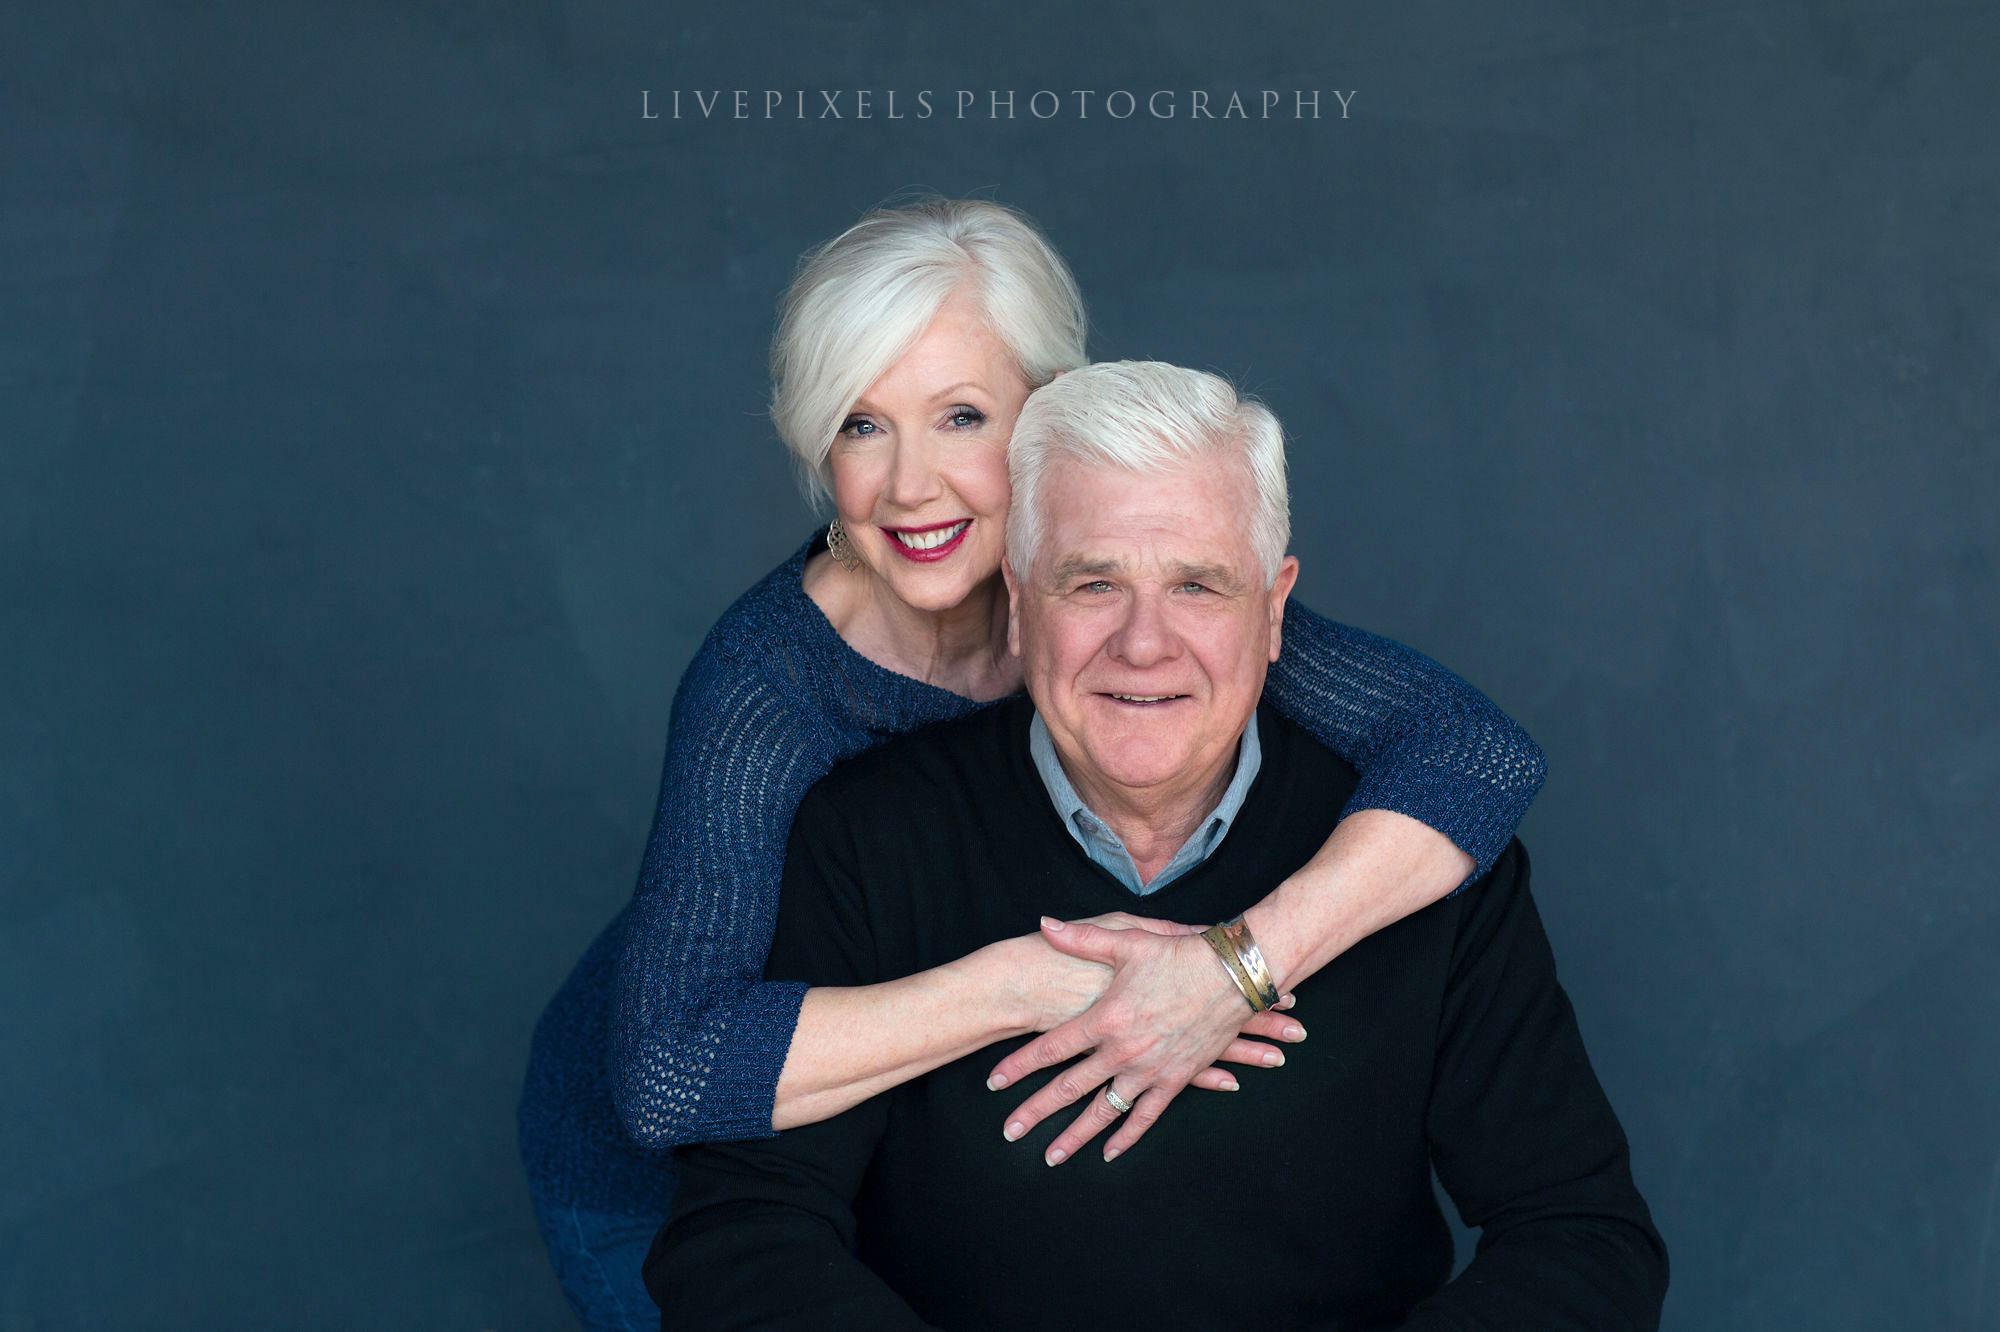 Best Anniversary Gift Idea, 30th anniversary studio portrait - Livepixels Photography, Toronto / livepixelsphotography.com